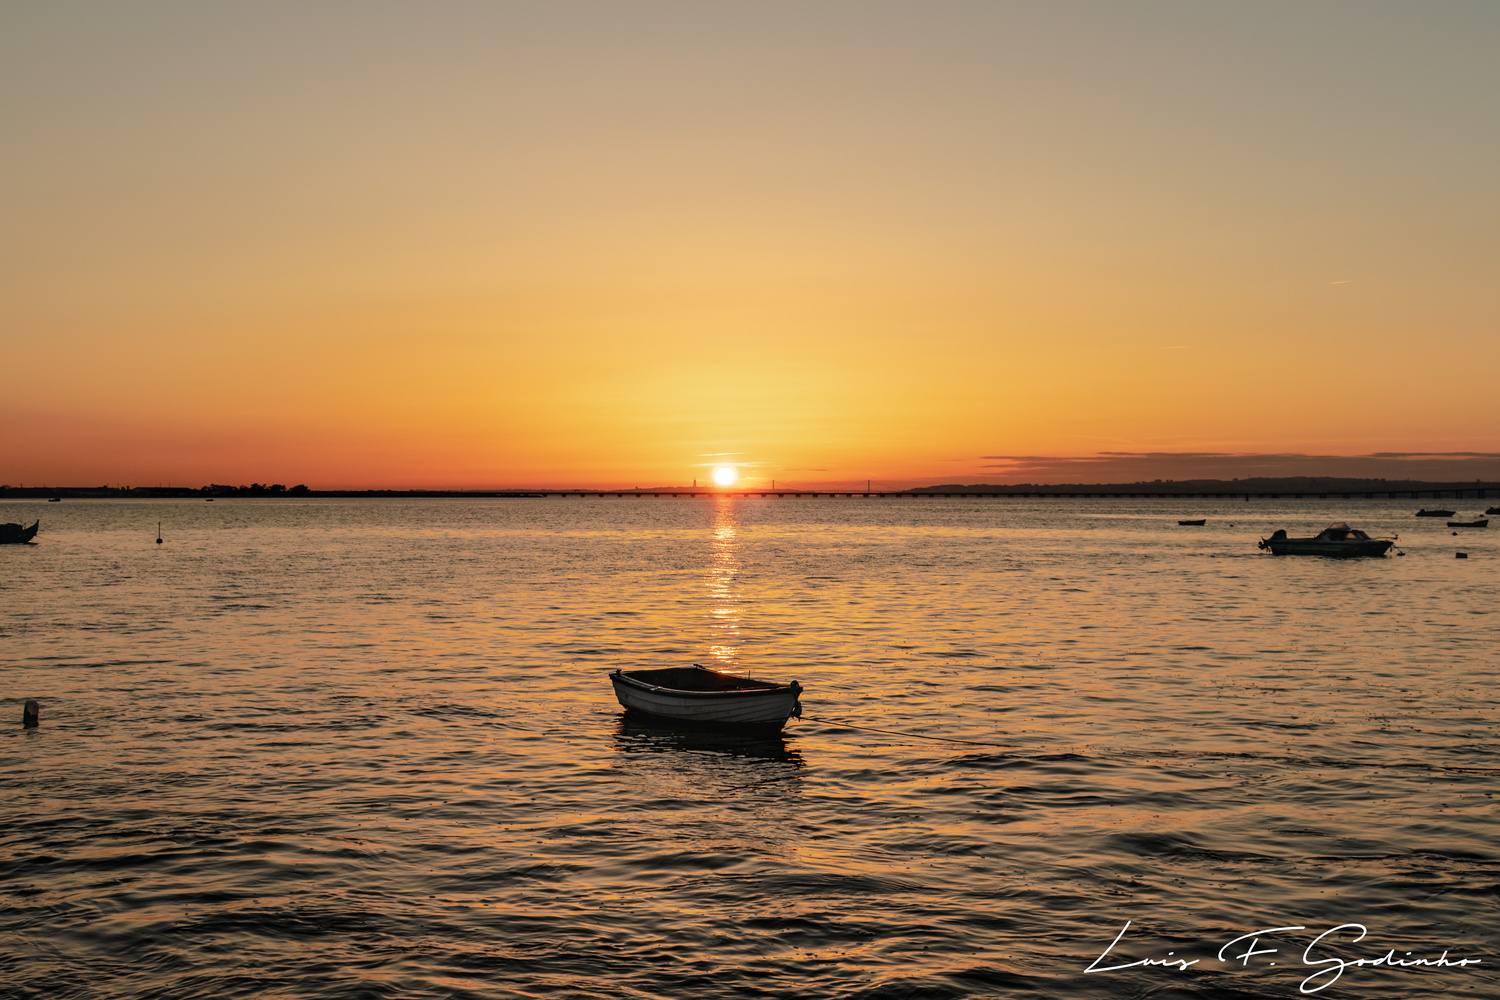 sunset on the river with boats by Luis F Godinho